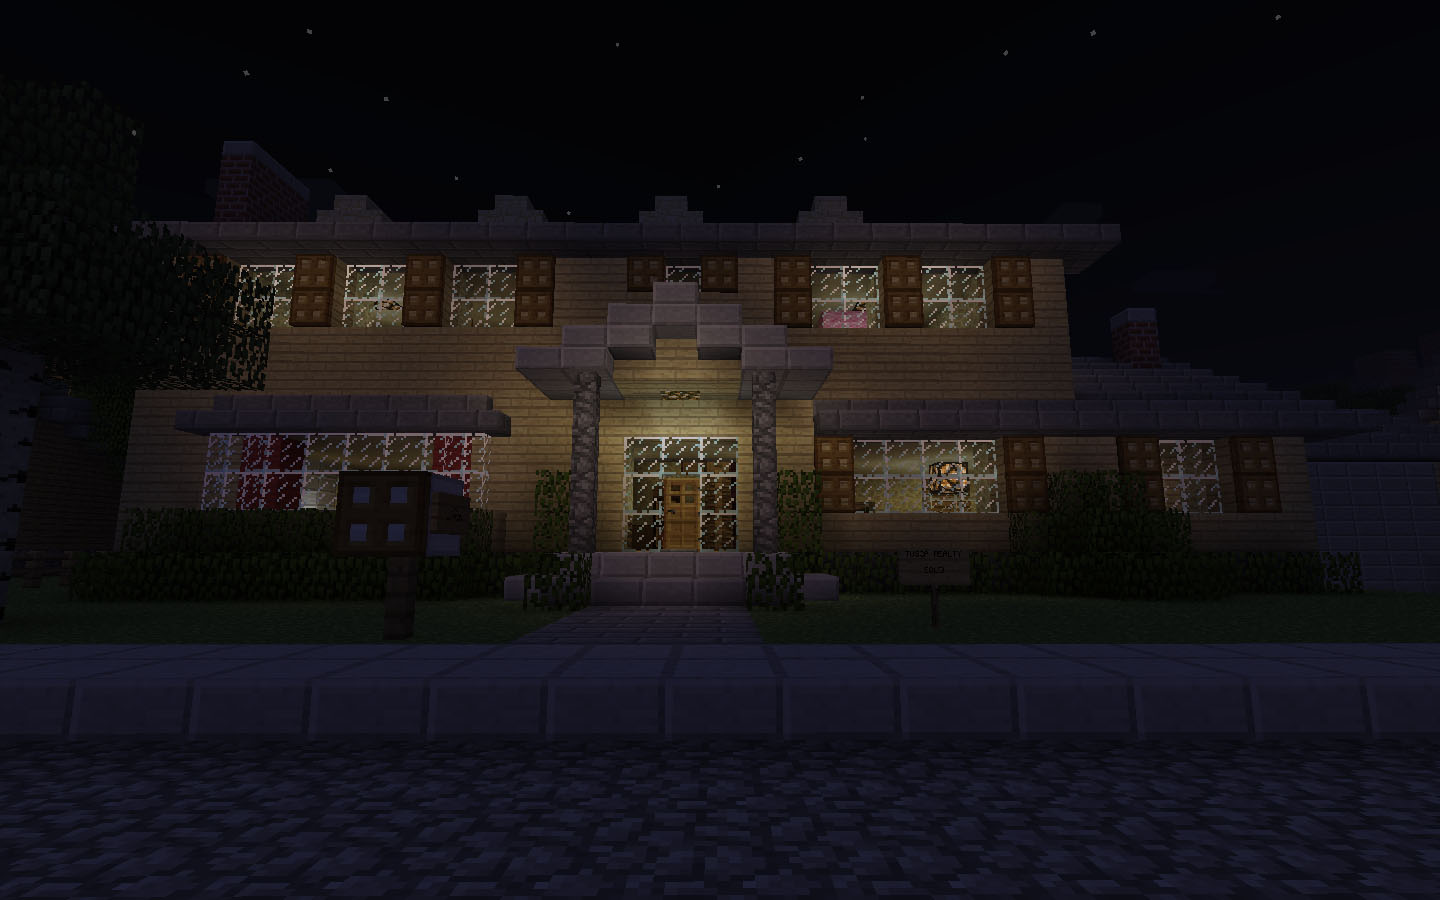 http://minecraft-forum.net/wp-content/uploads/2013/08/5ec3a__A-Day-in-Tuscarora-Map-6.jpg